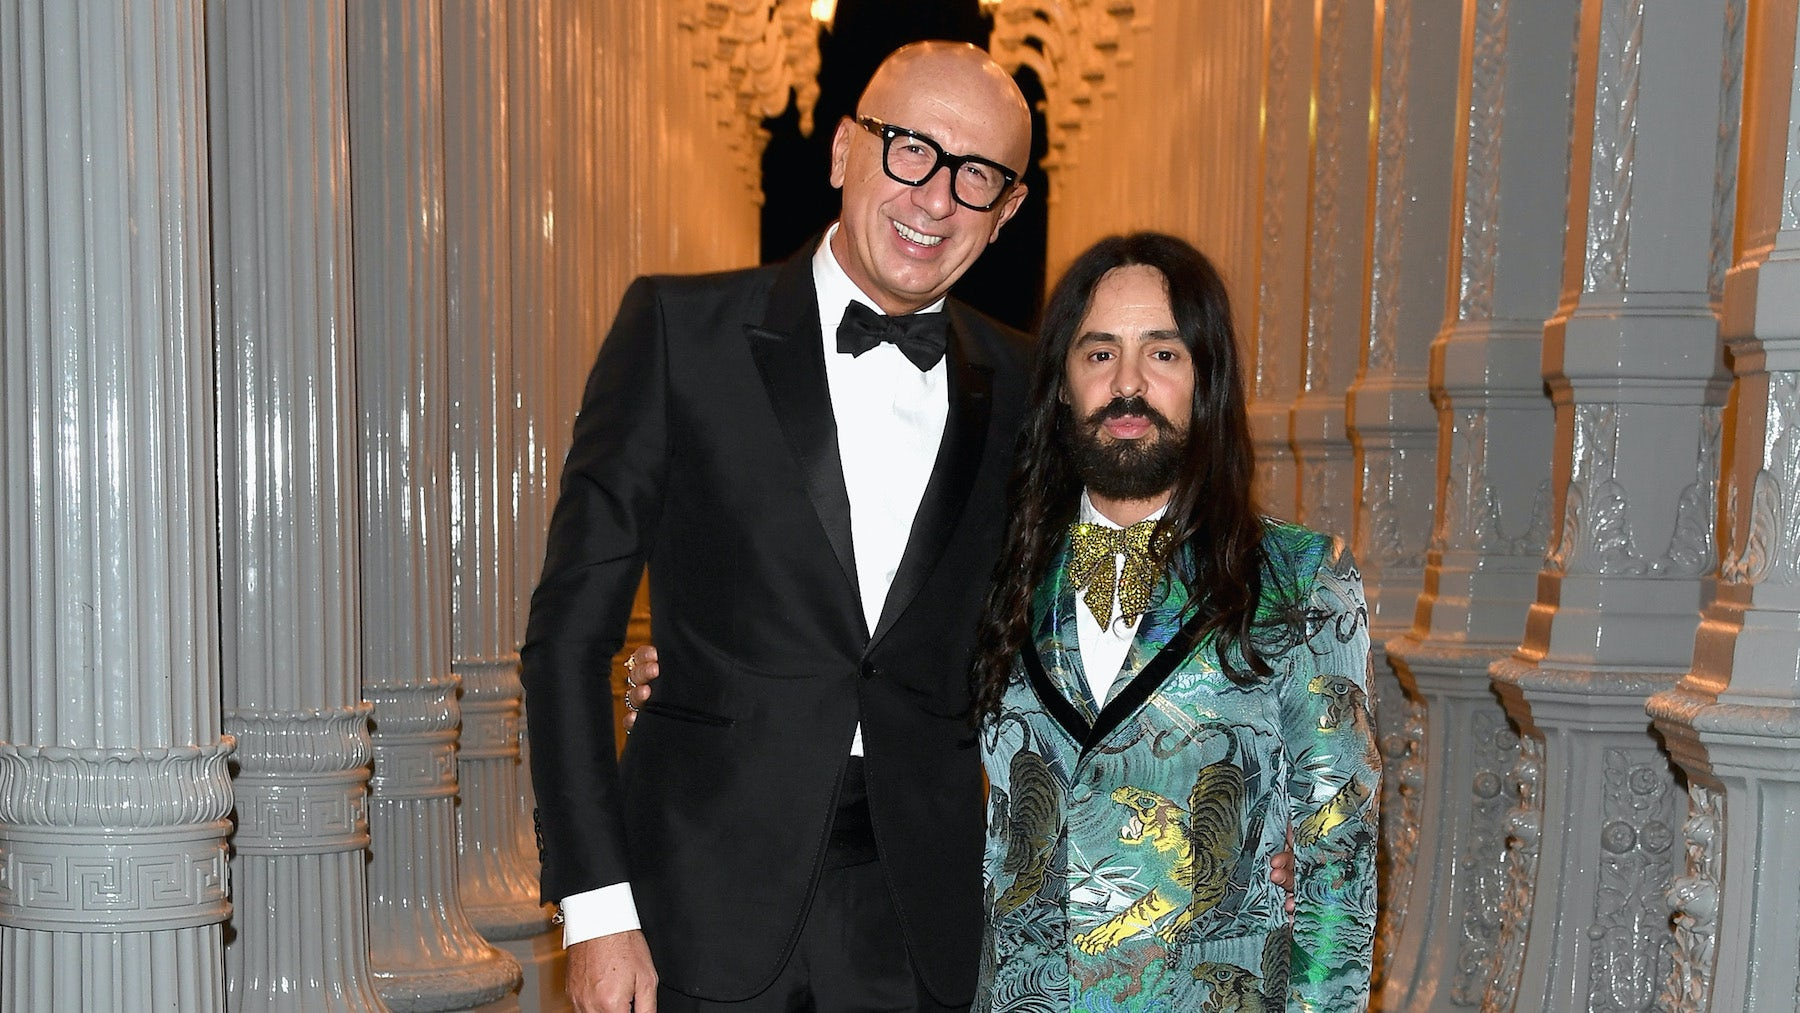 Gucci chief executive Marco Bizzarri with Gucci creative director Alessandro Michele at the LACMA Art + Film Gala 2016 | Source: Getty Images